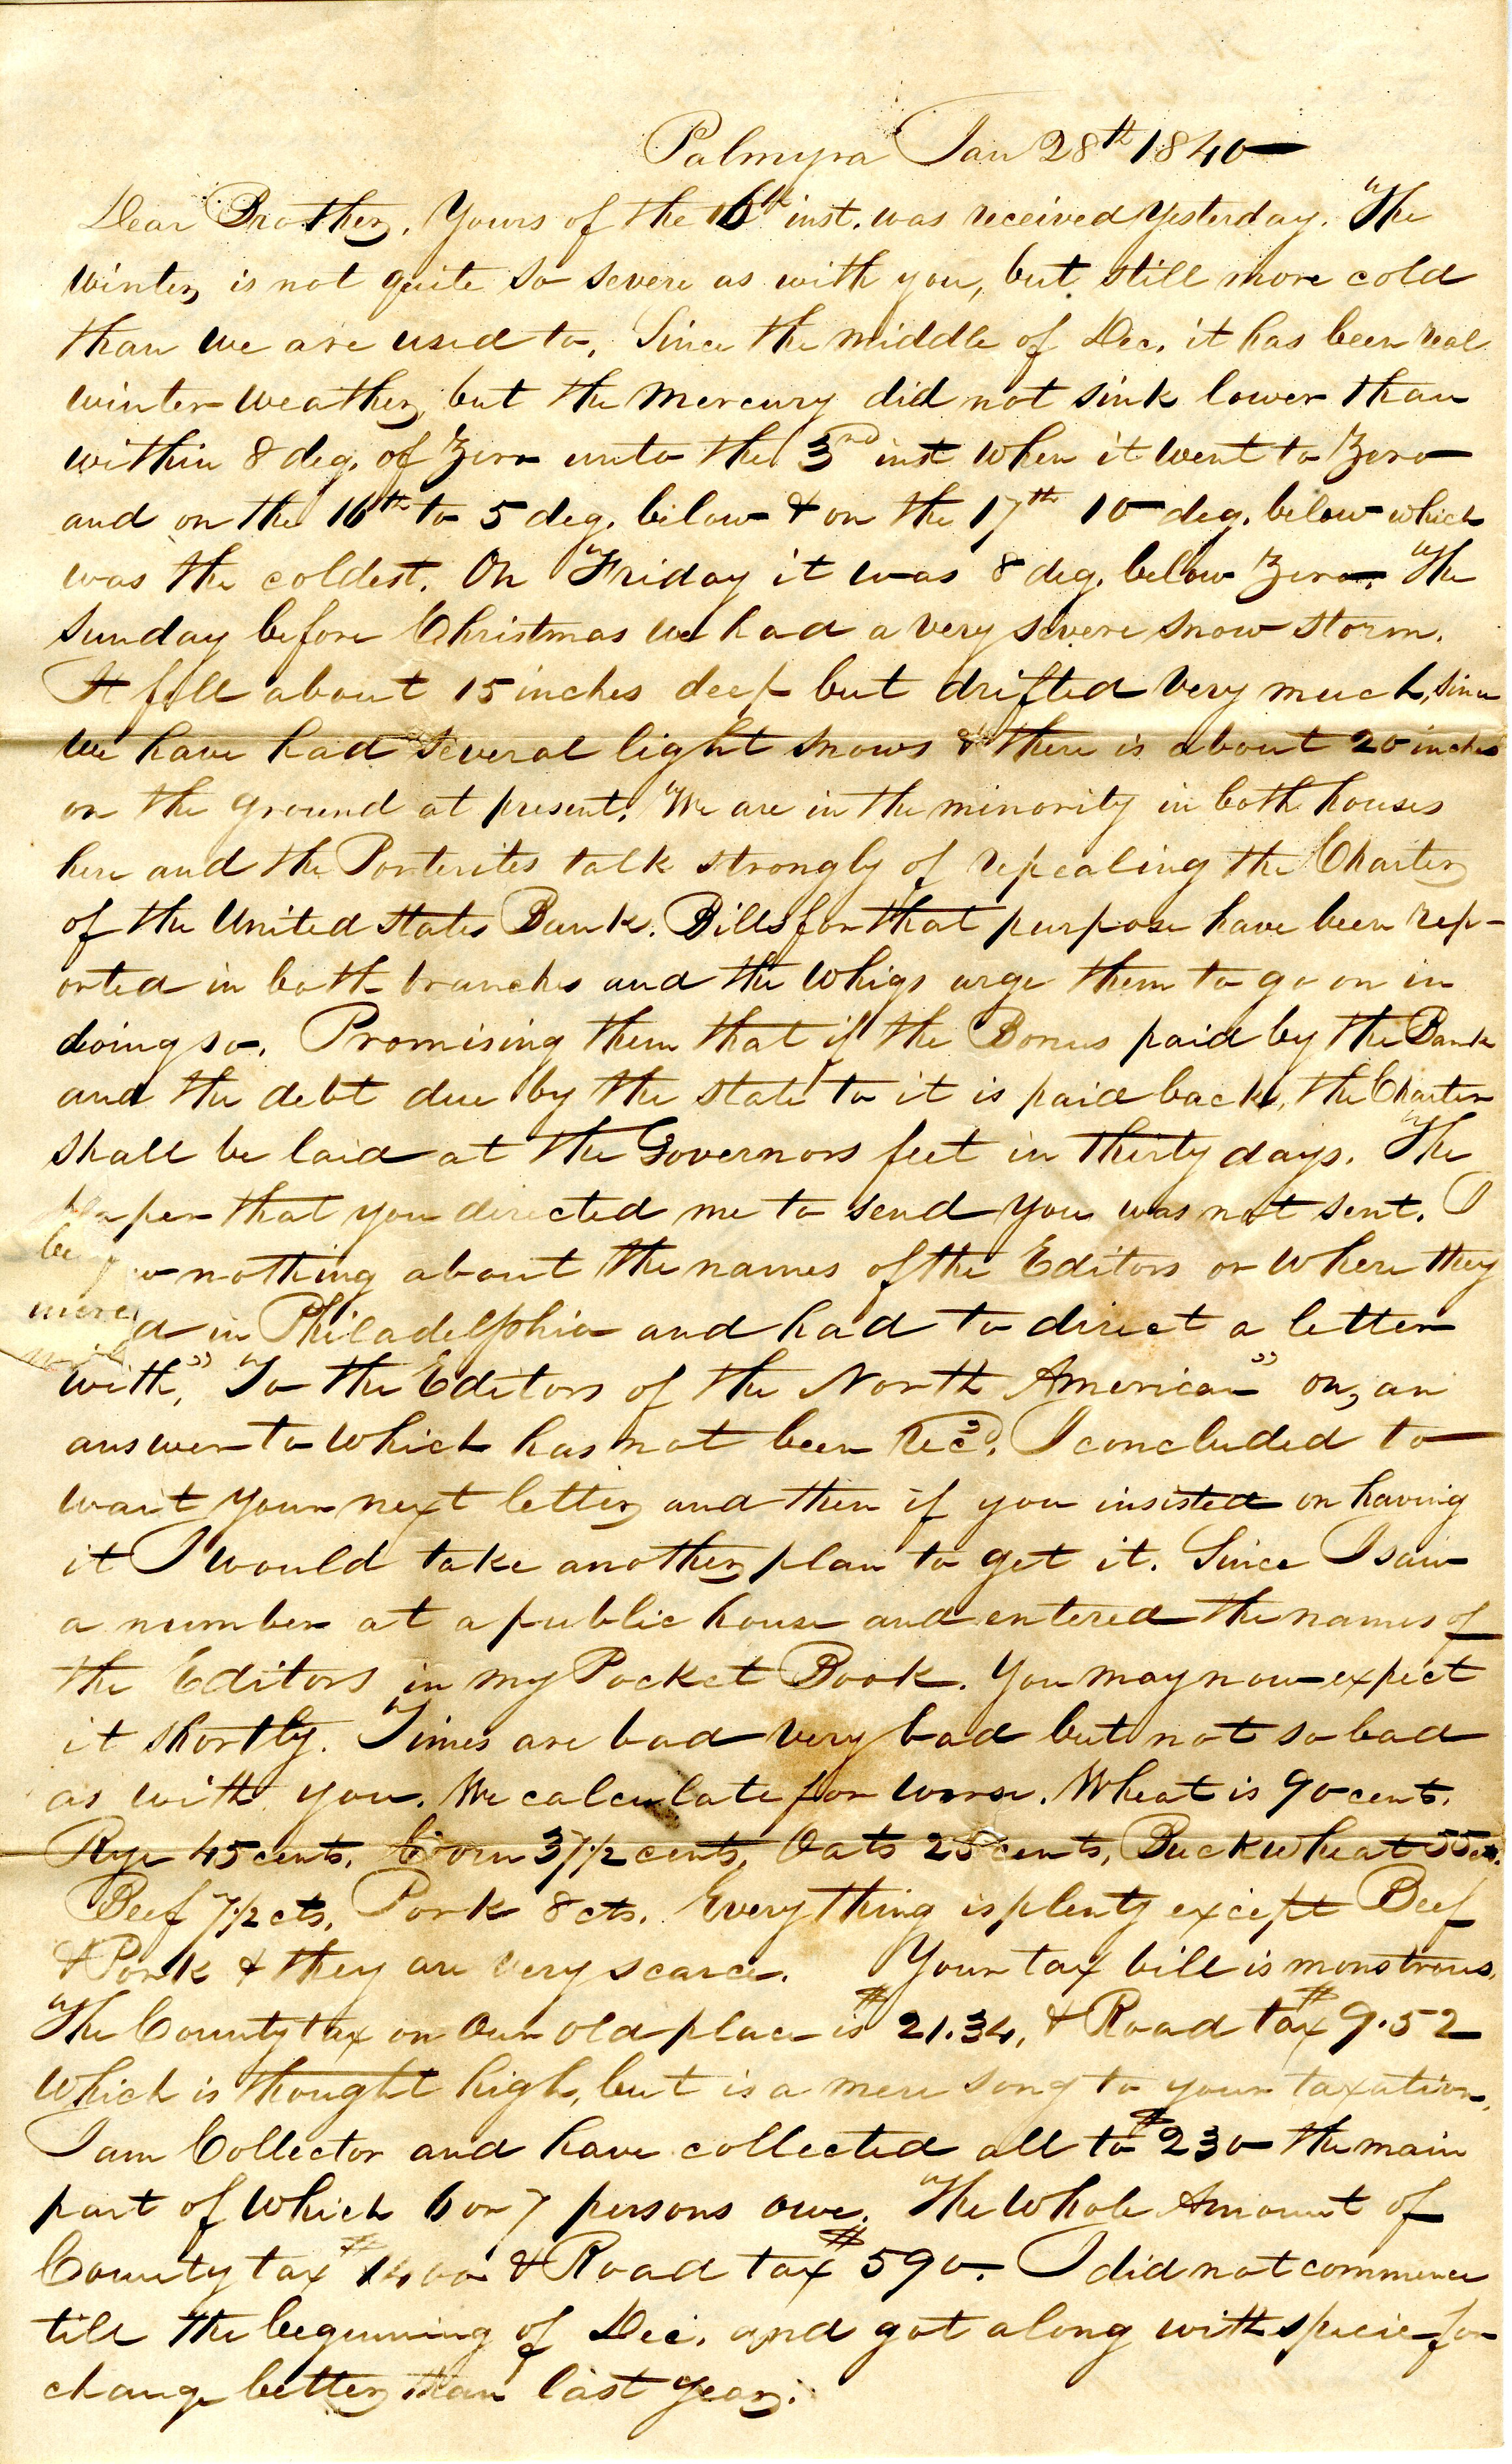 Letter From William Geddes to John Geddes, January 28, 1840 image